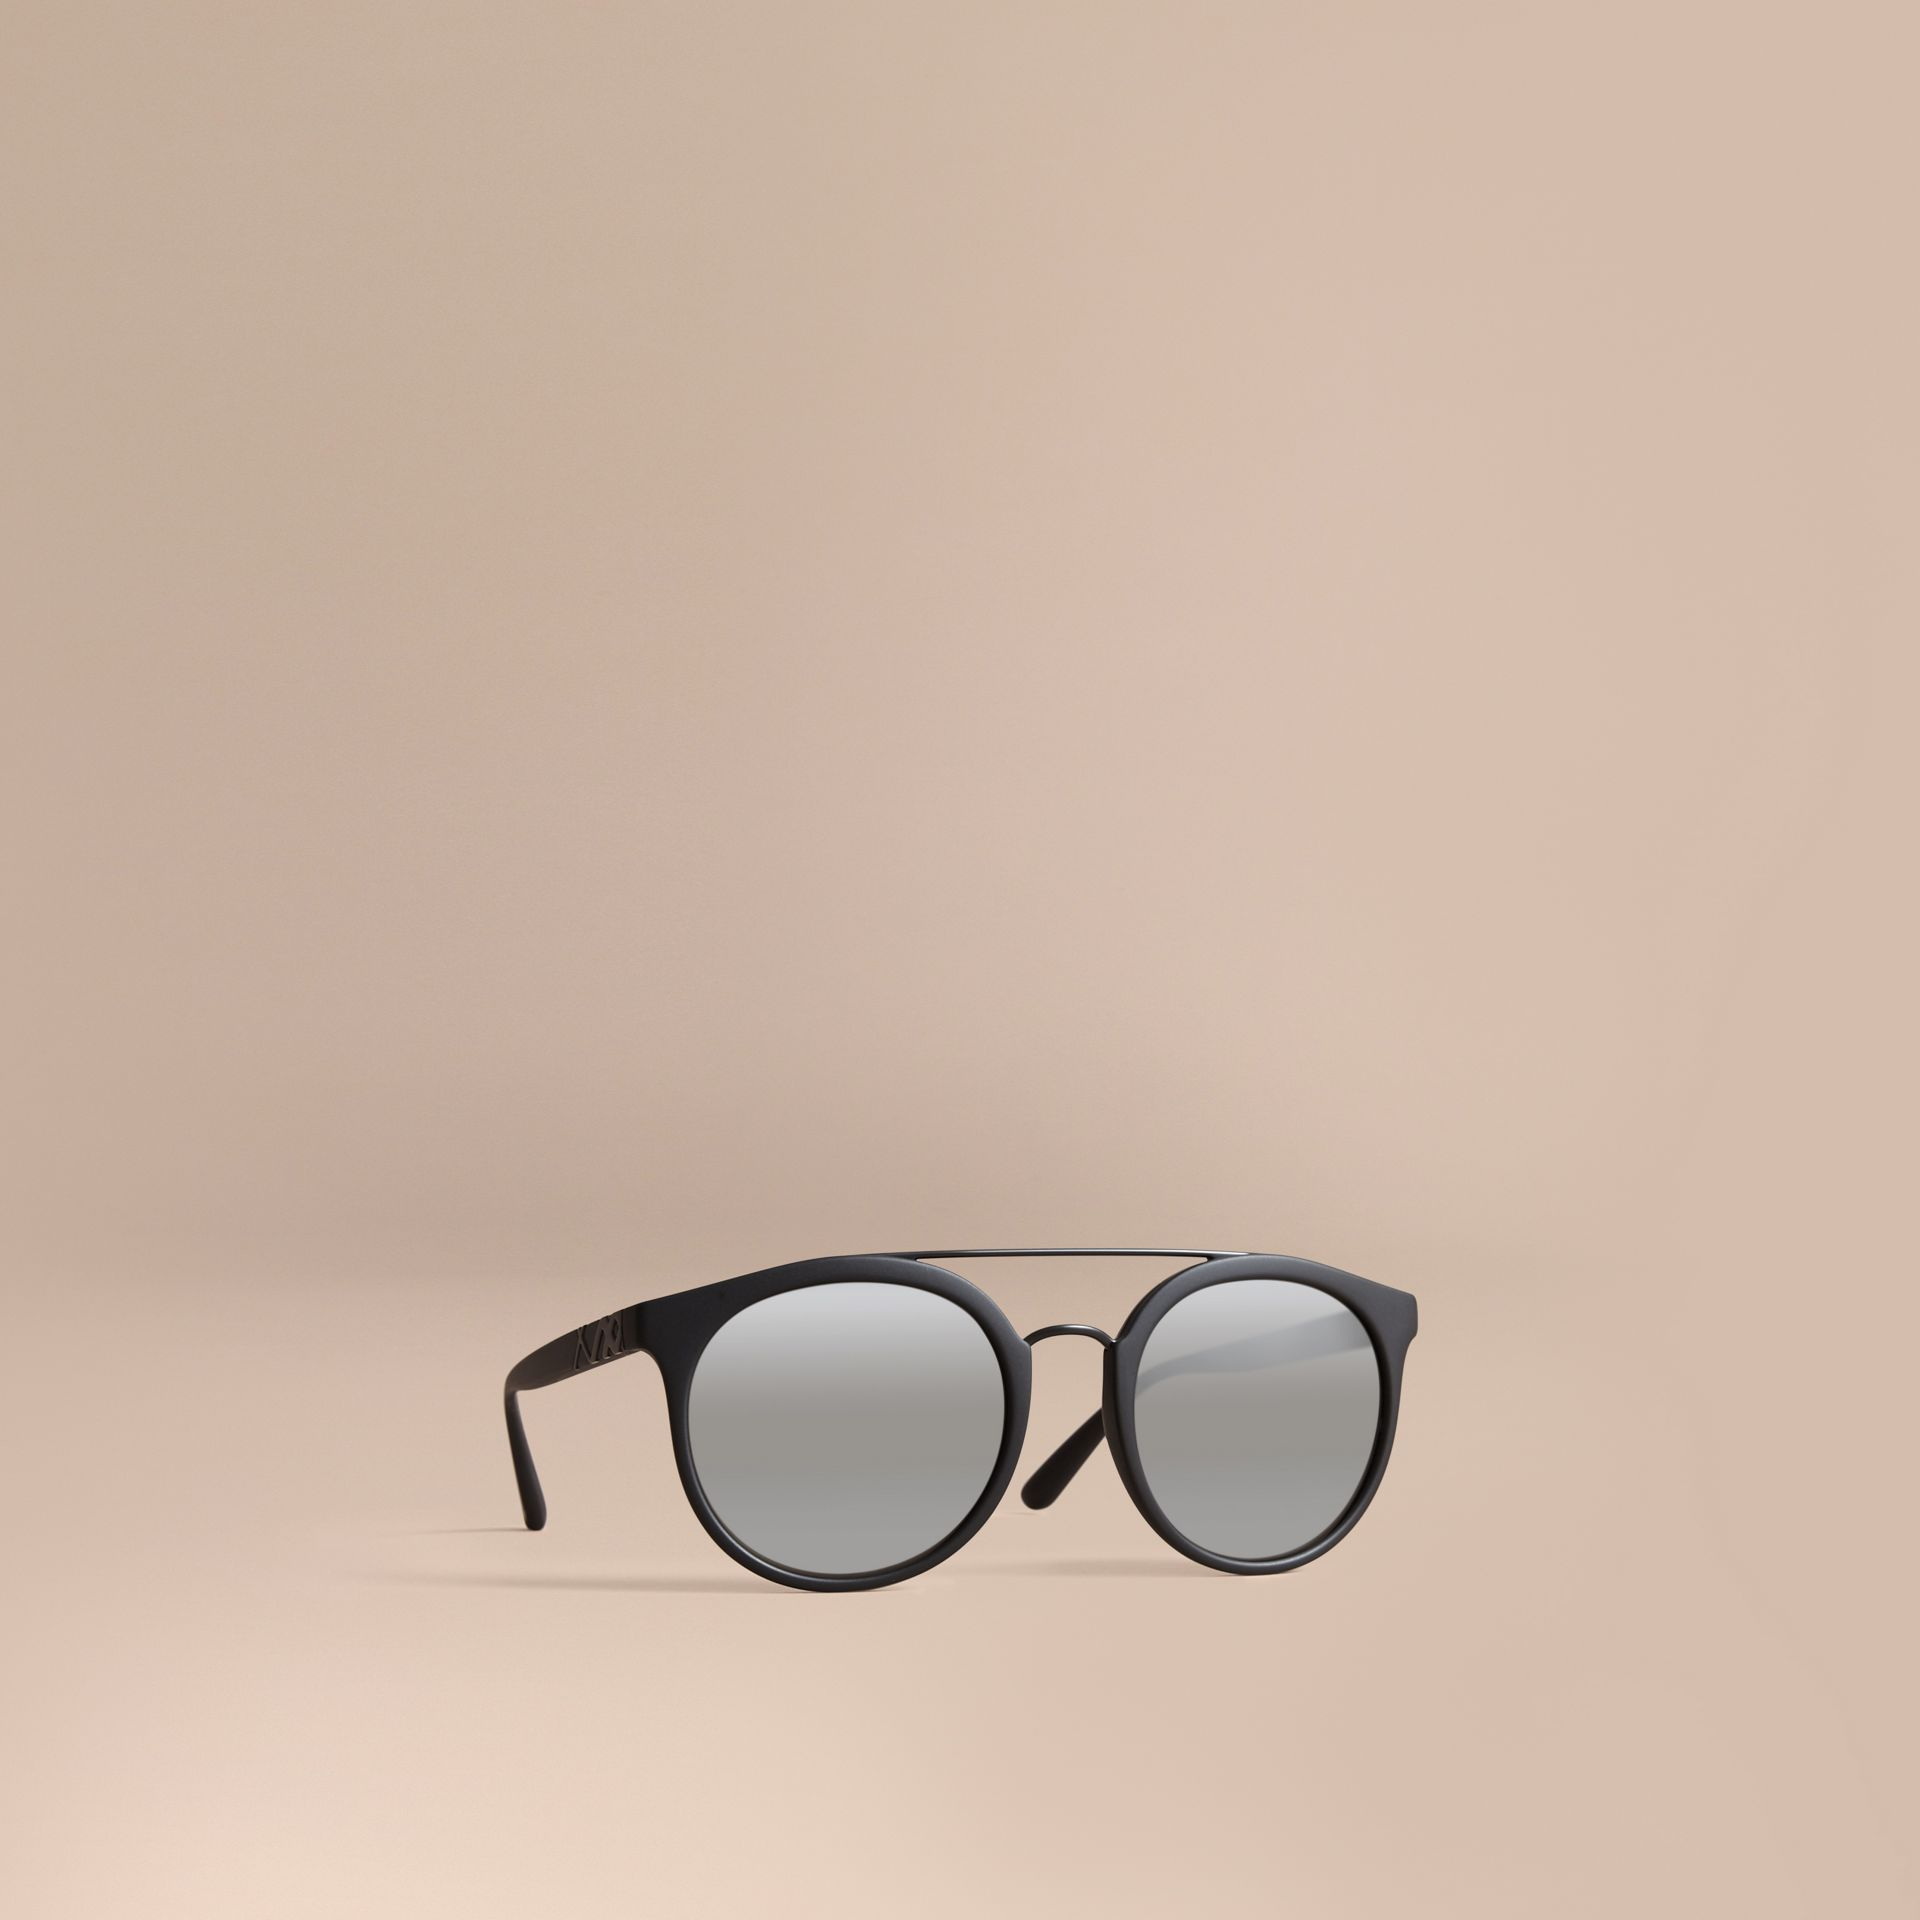 Top Bar Round Frame Sunglasses in Black - Men | Burberry United States - gallery image 1